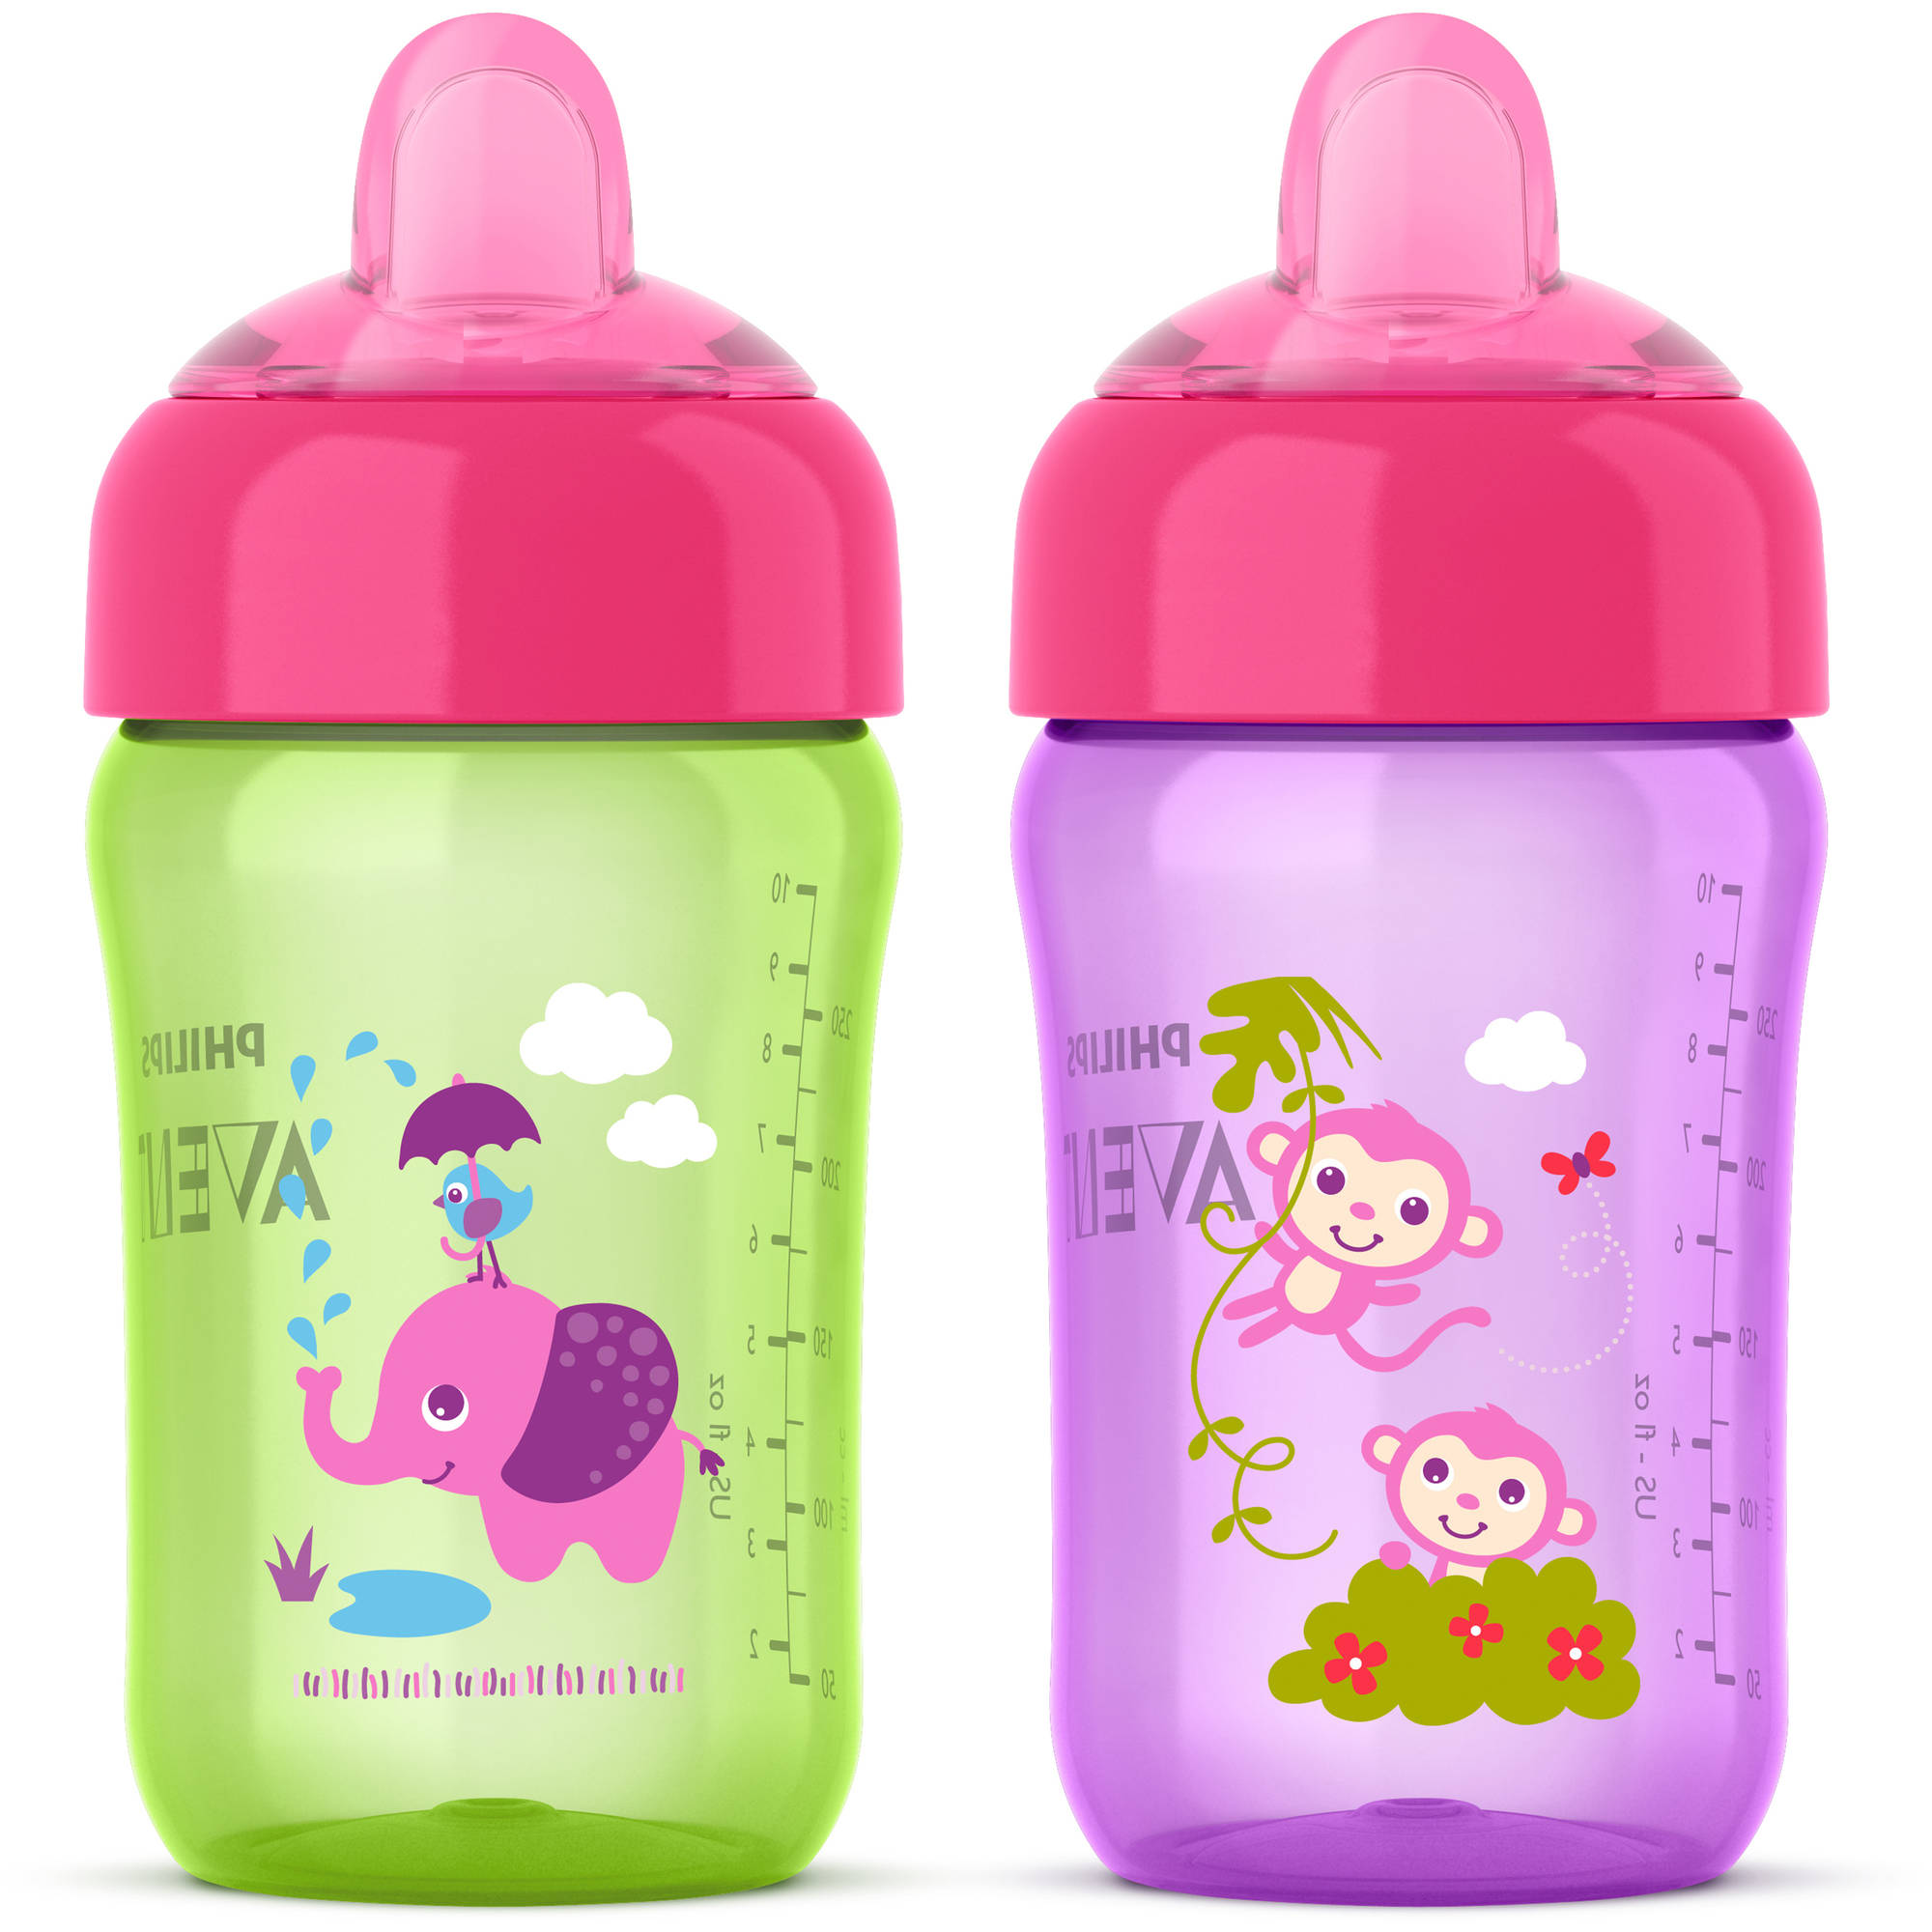 Philips Avent My Sip N Click Cup Stage 2 Soft Spout Sippy Cup - 2 pack